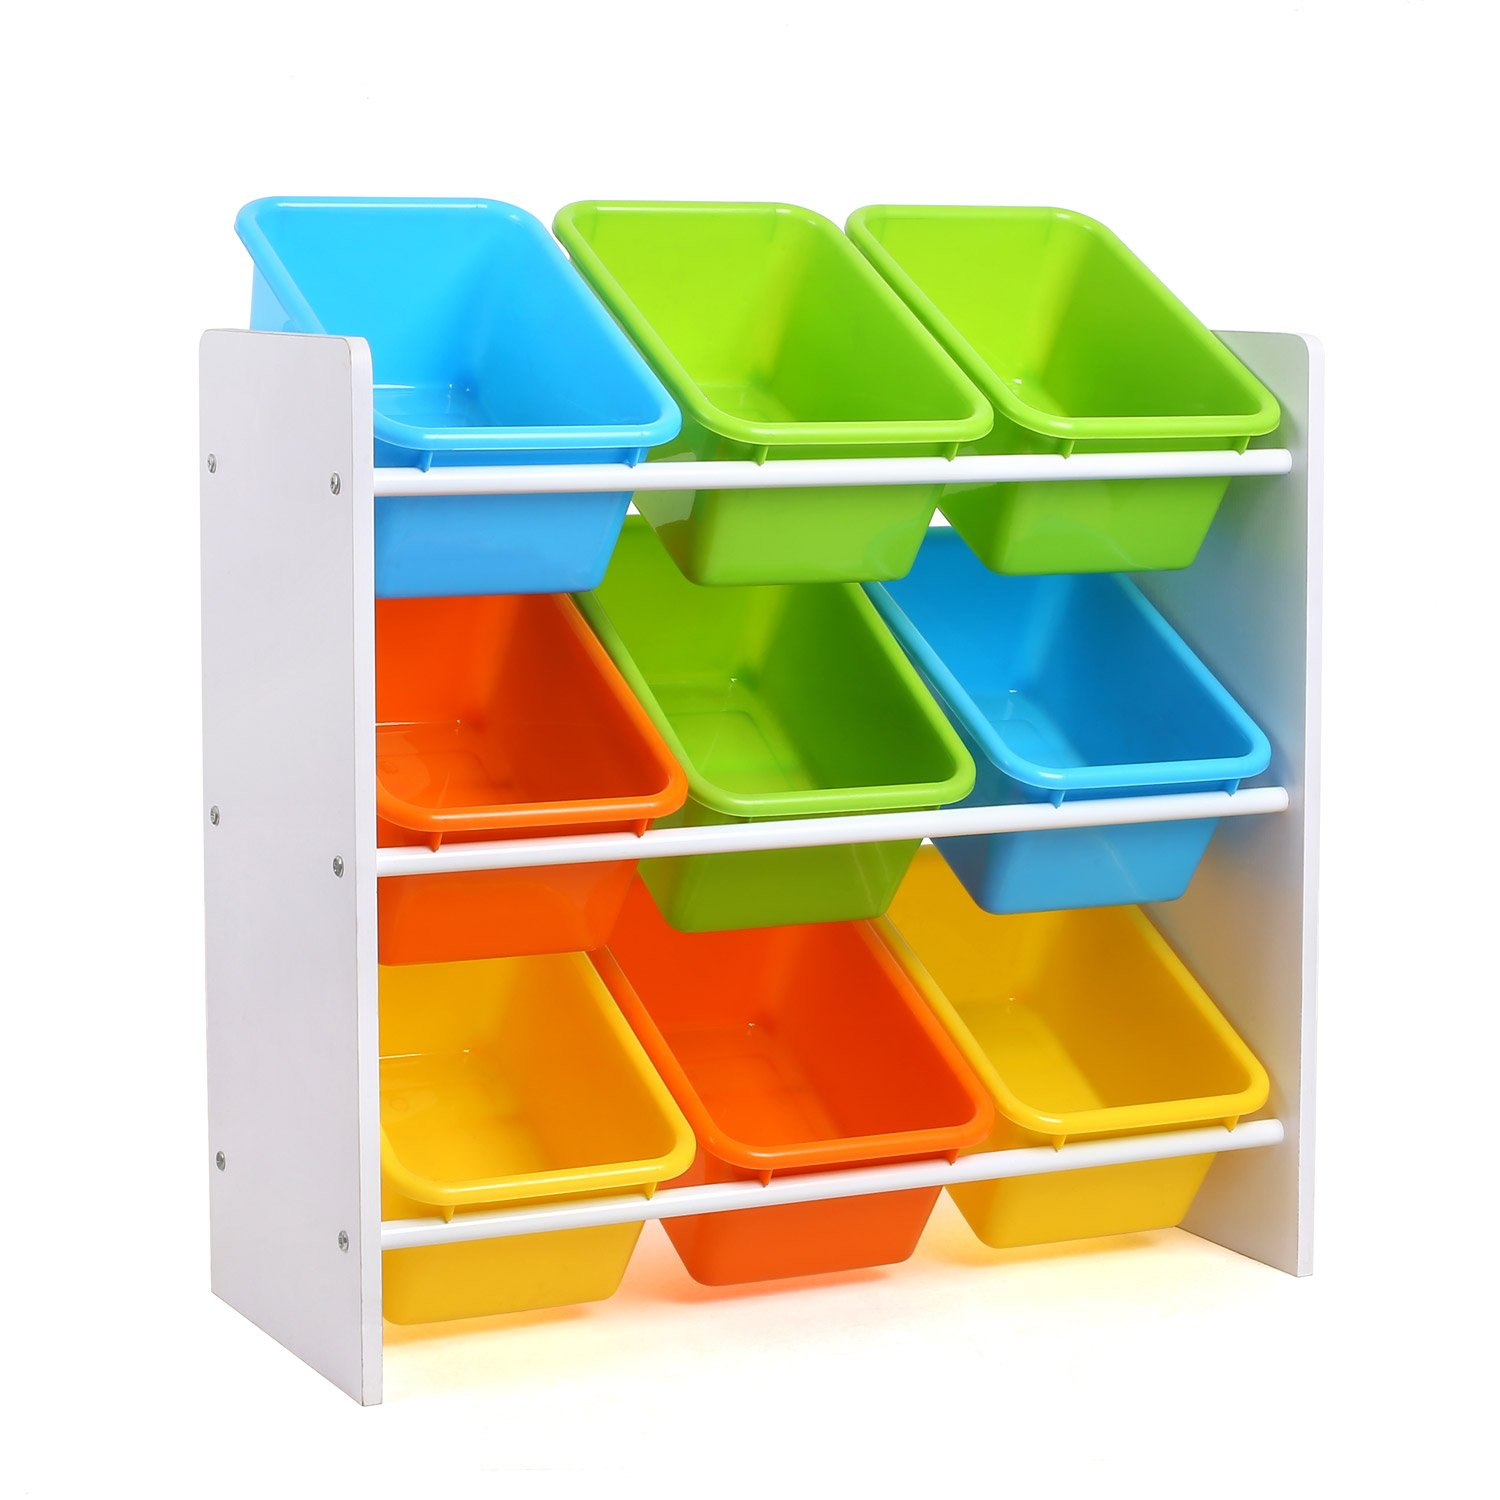 Homfa Toddlers Toy Storage Organizer With 9 Multiple Color Plastic Bins Shelf Drawer For Kids Bedroom